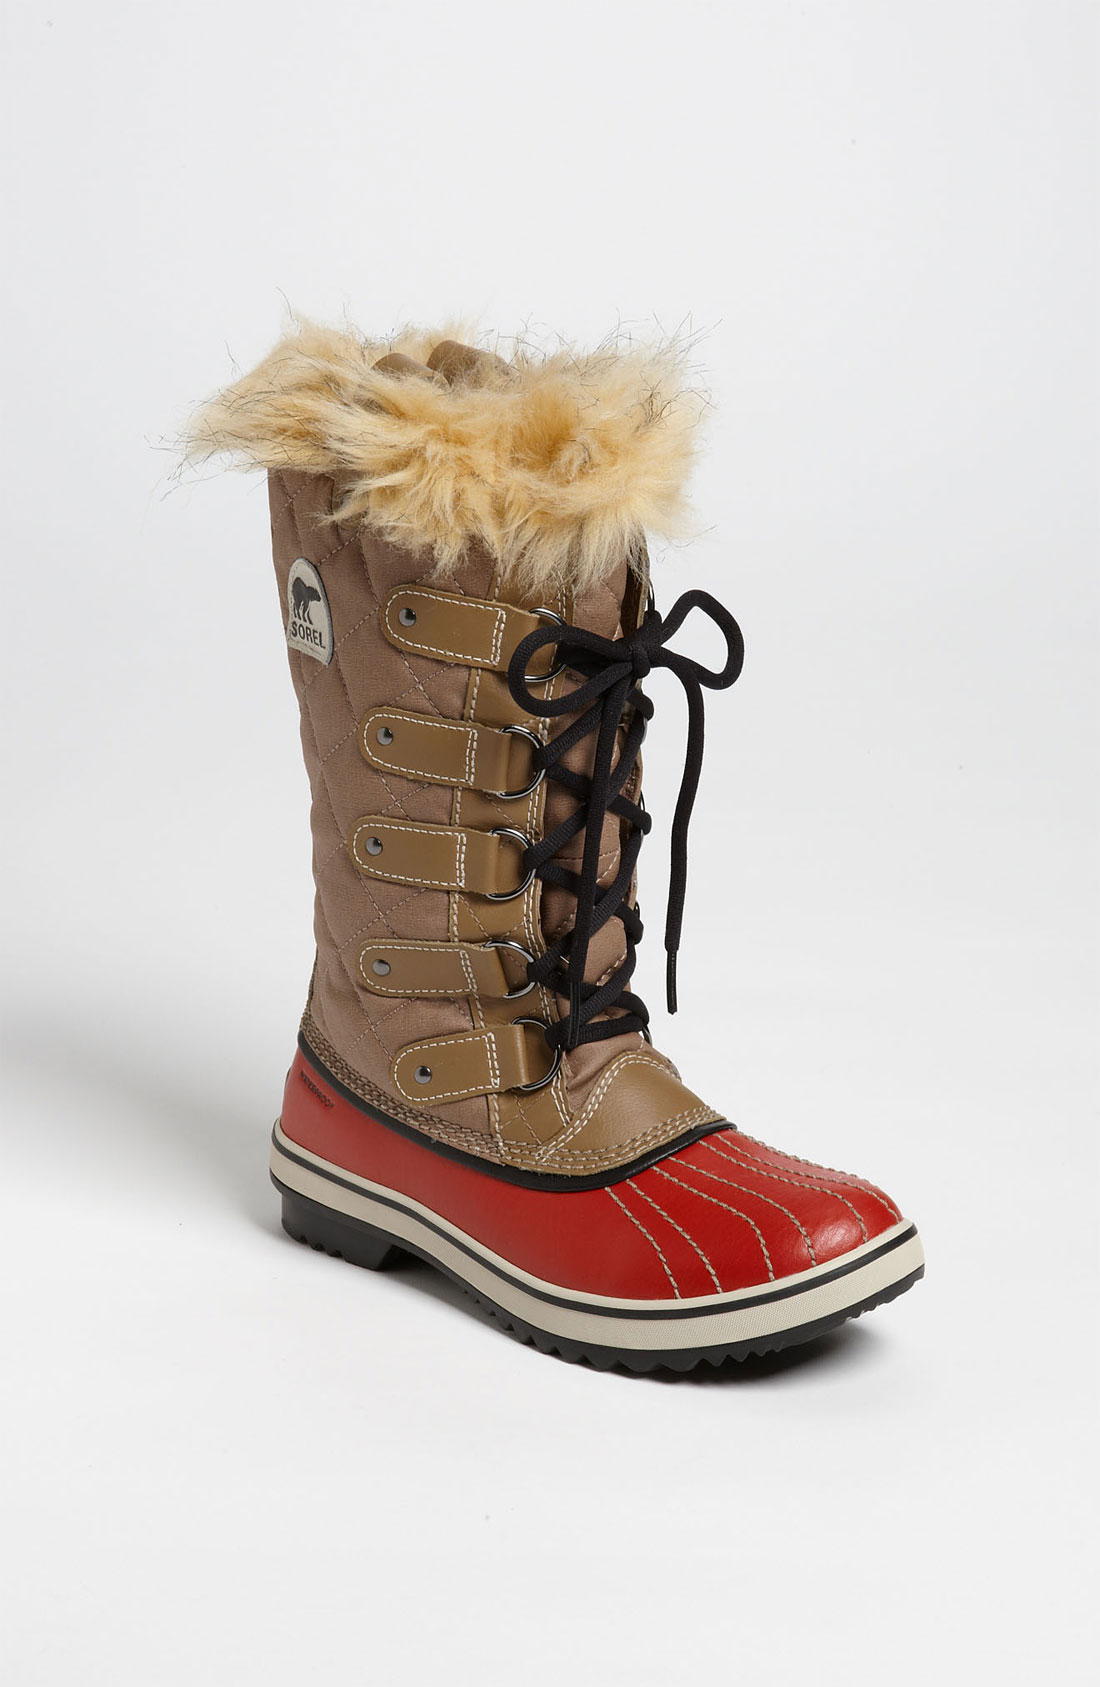 Sorel Tofino Boot In Beige Red Tan Lyst